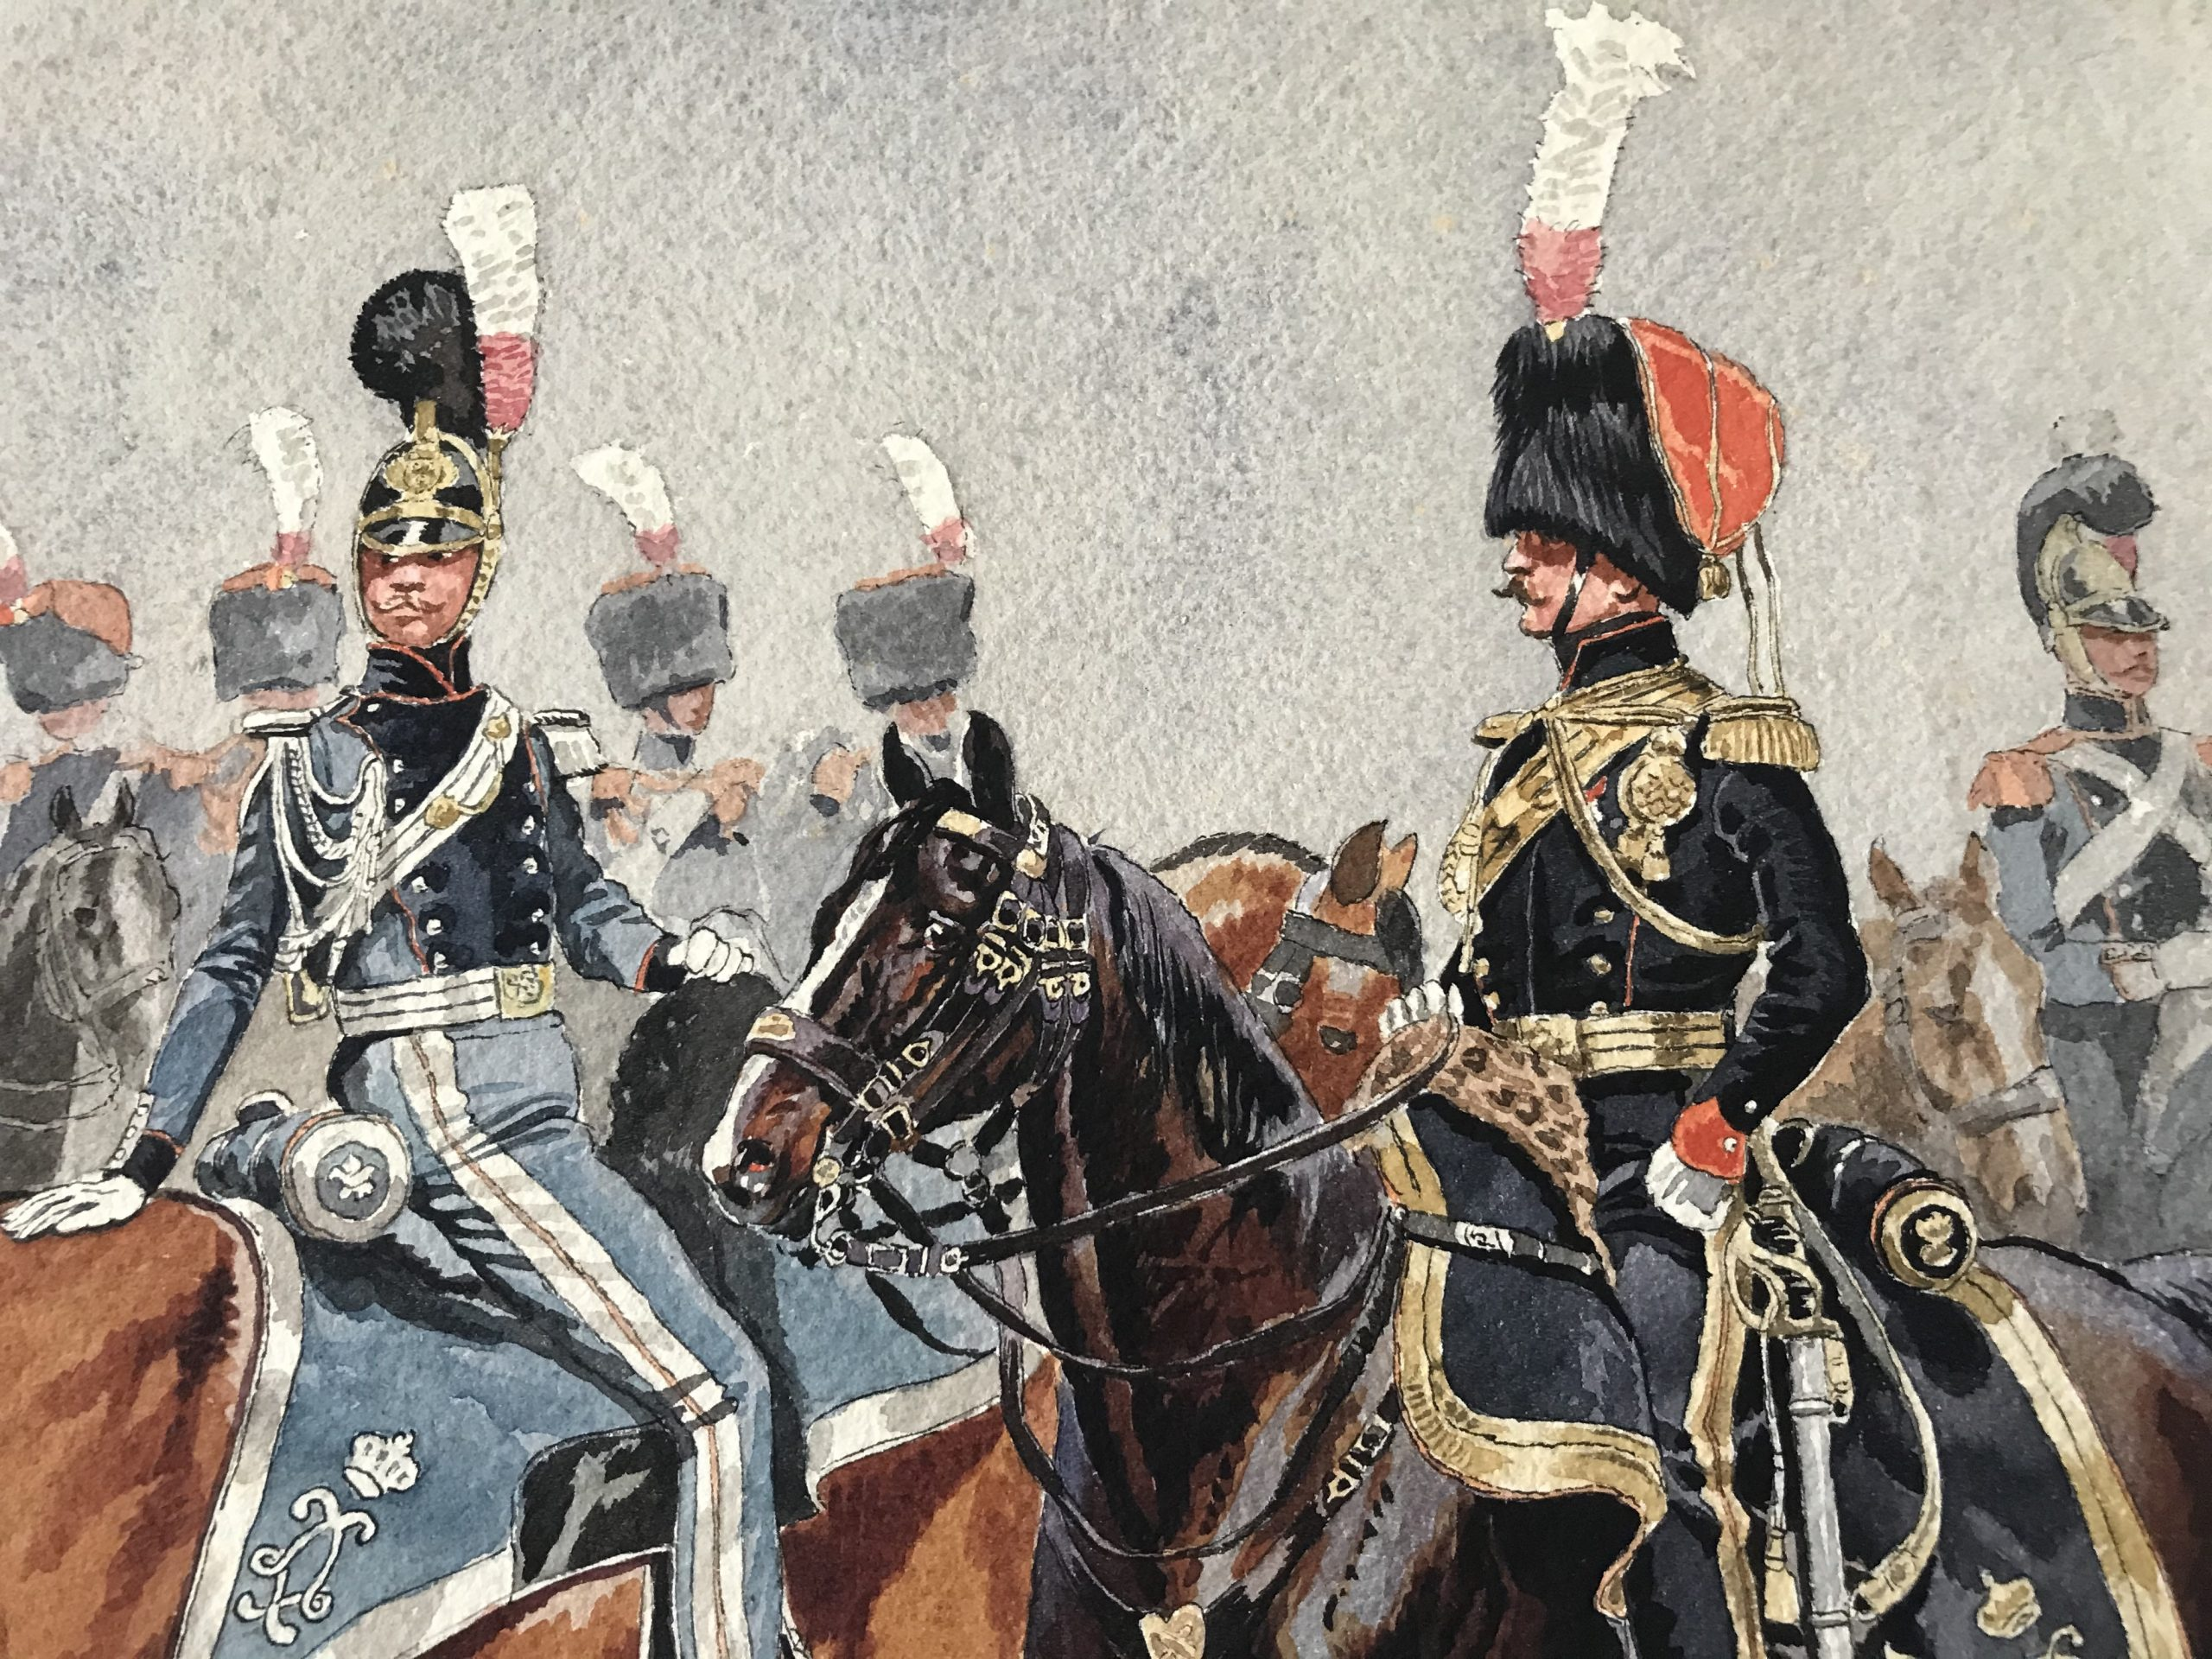 Belle Aquarelle originale - Garde Royale Restauration - Les Uniformes de la Garde Royale - Restauration